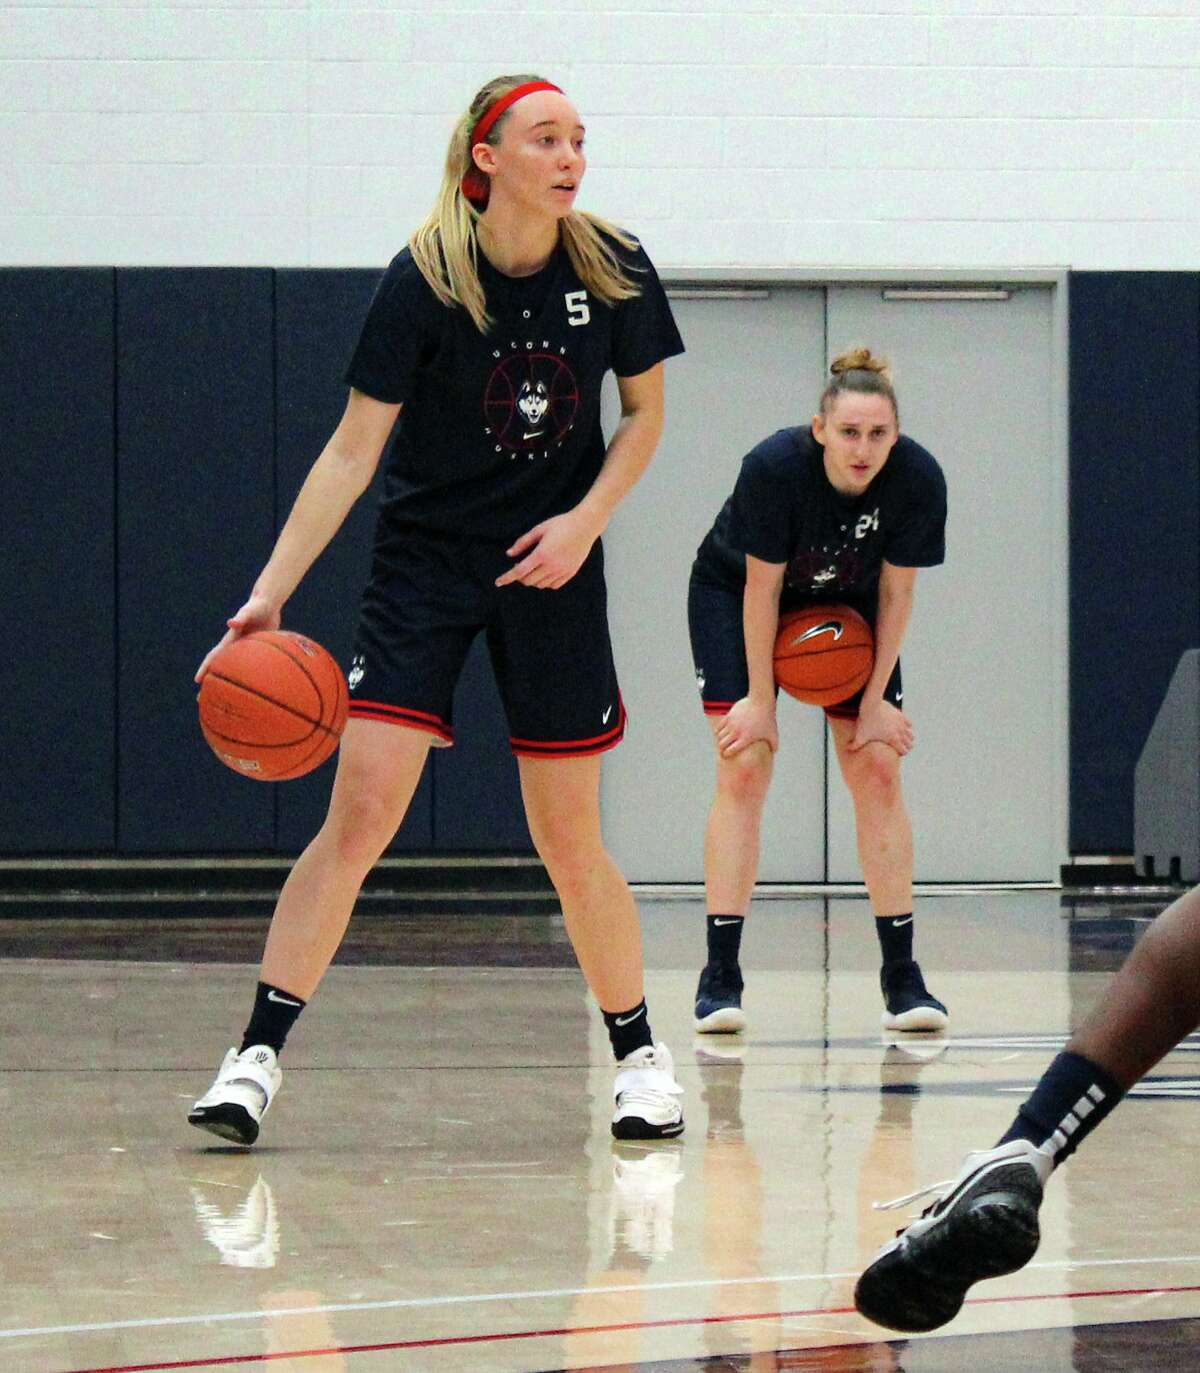 UConn freshman Paige Bueckers participates in women's basketball practice on Wednesday, Oct. 14, 2020 in Storrs, Conn.